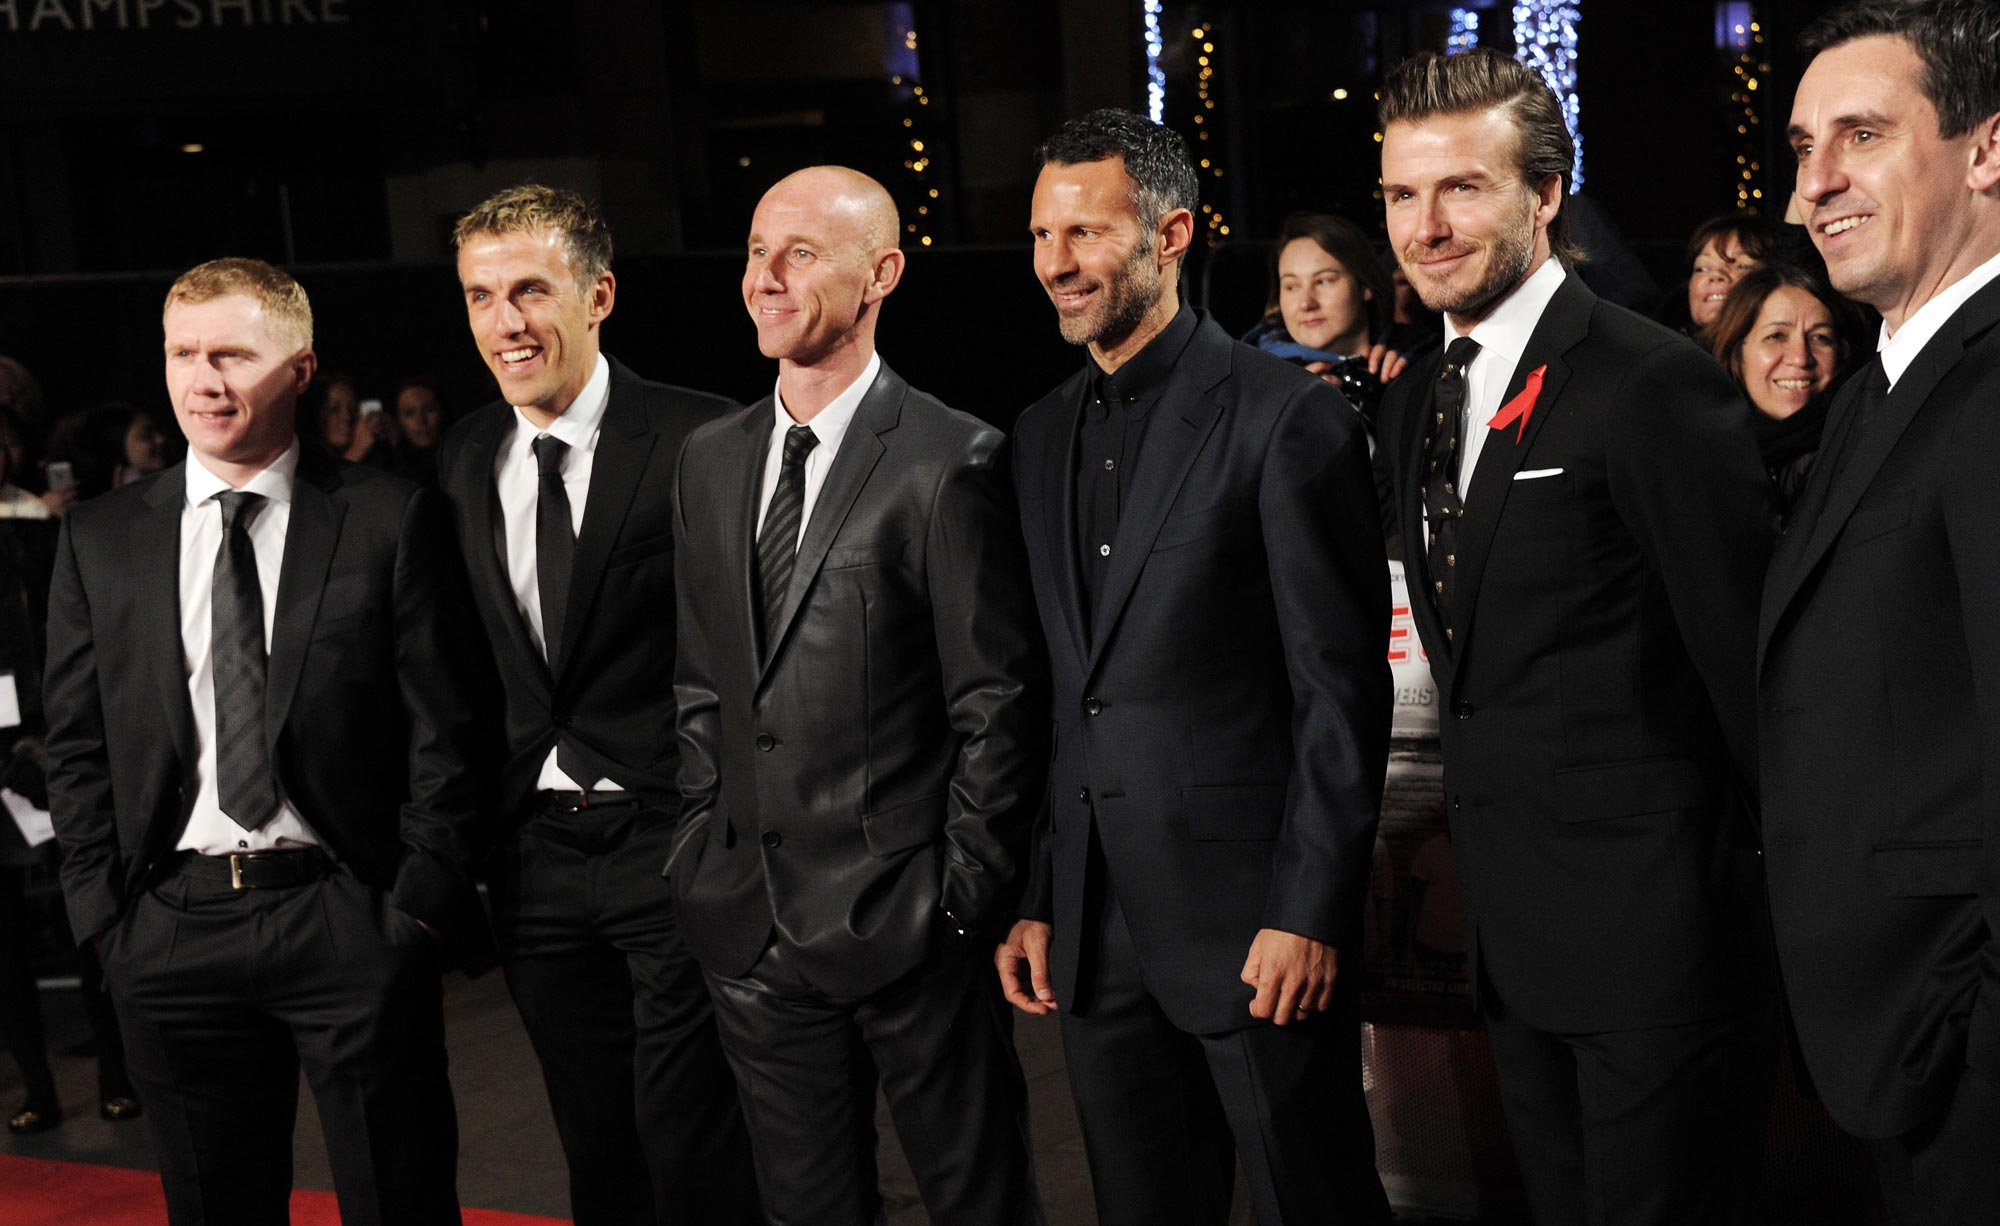 Manchester United: The Class of 92